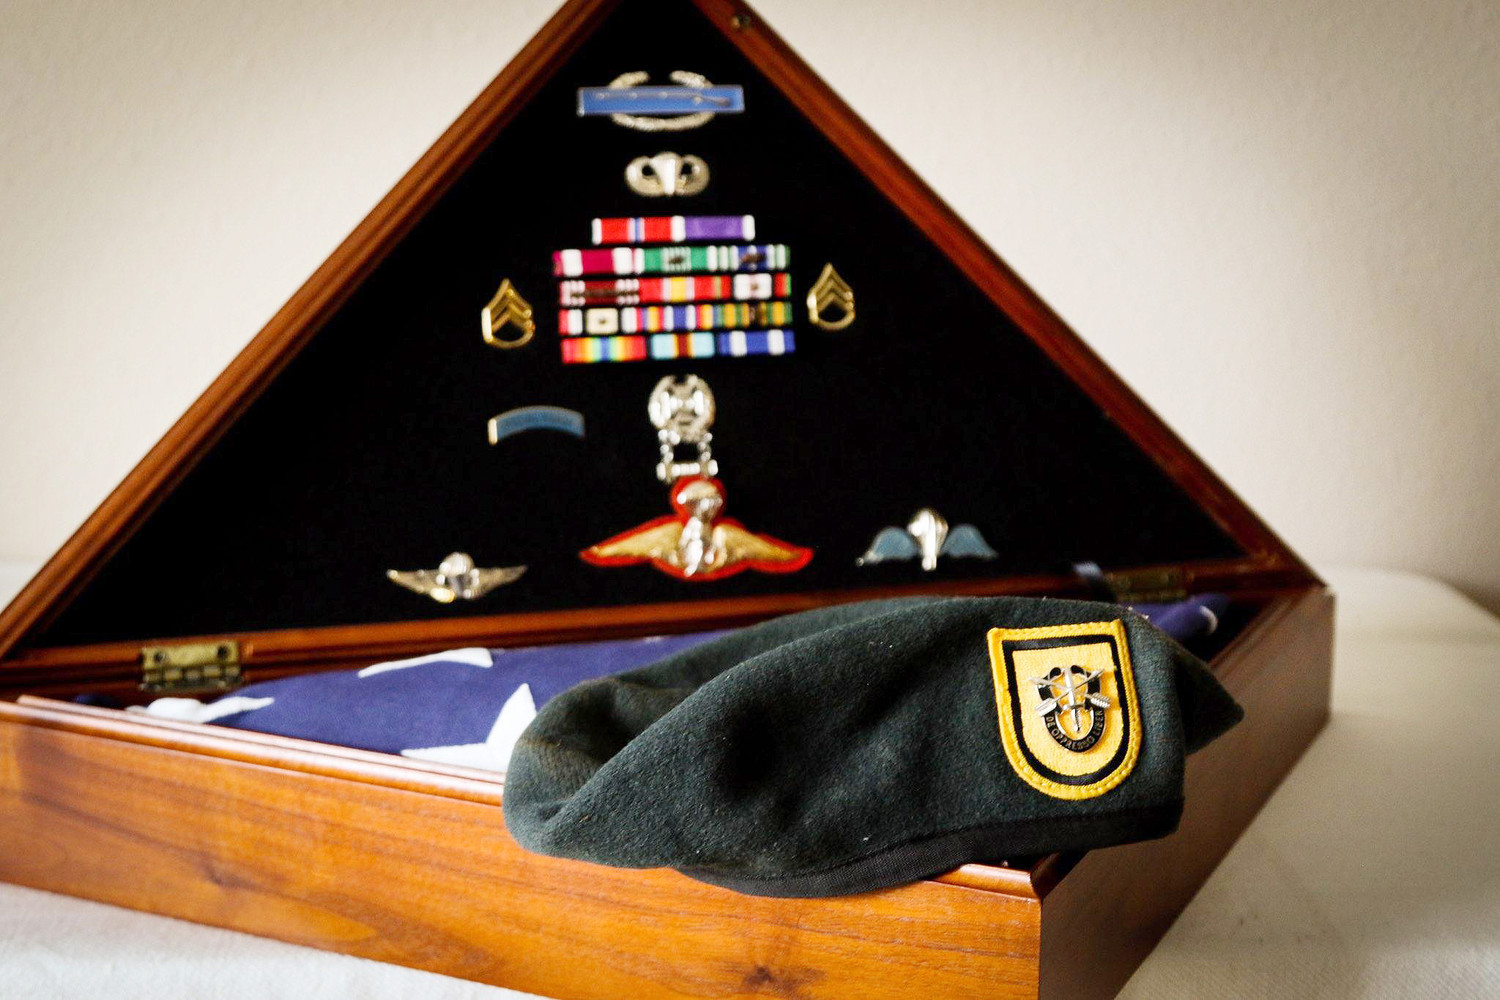 A treasured photo shared by Krista Simpson Anderson, shows her late husband's flag, beret and medals. In 2013, SSG. Simpson, who courageously served in the Special Forces, died from injuries sustained in a roadside bombing in Afghanistan.